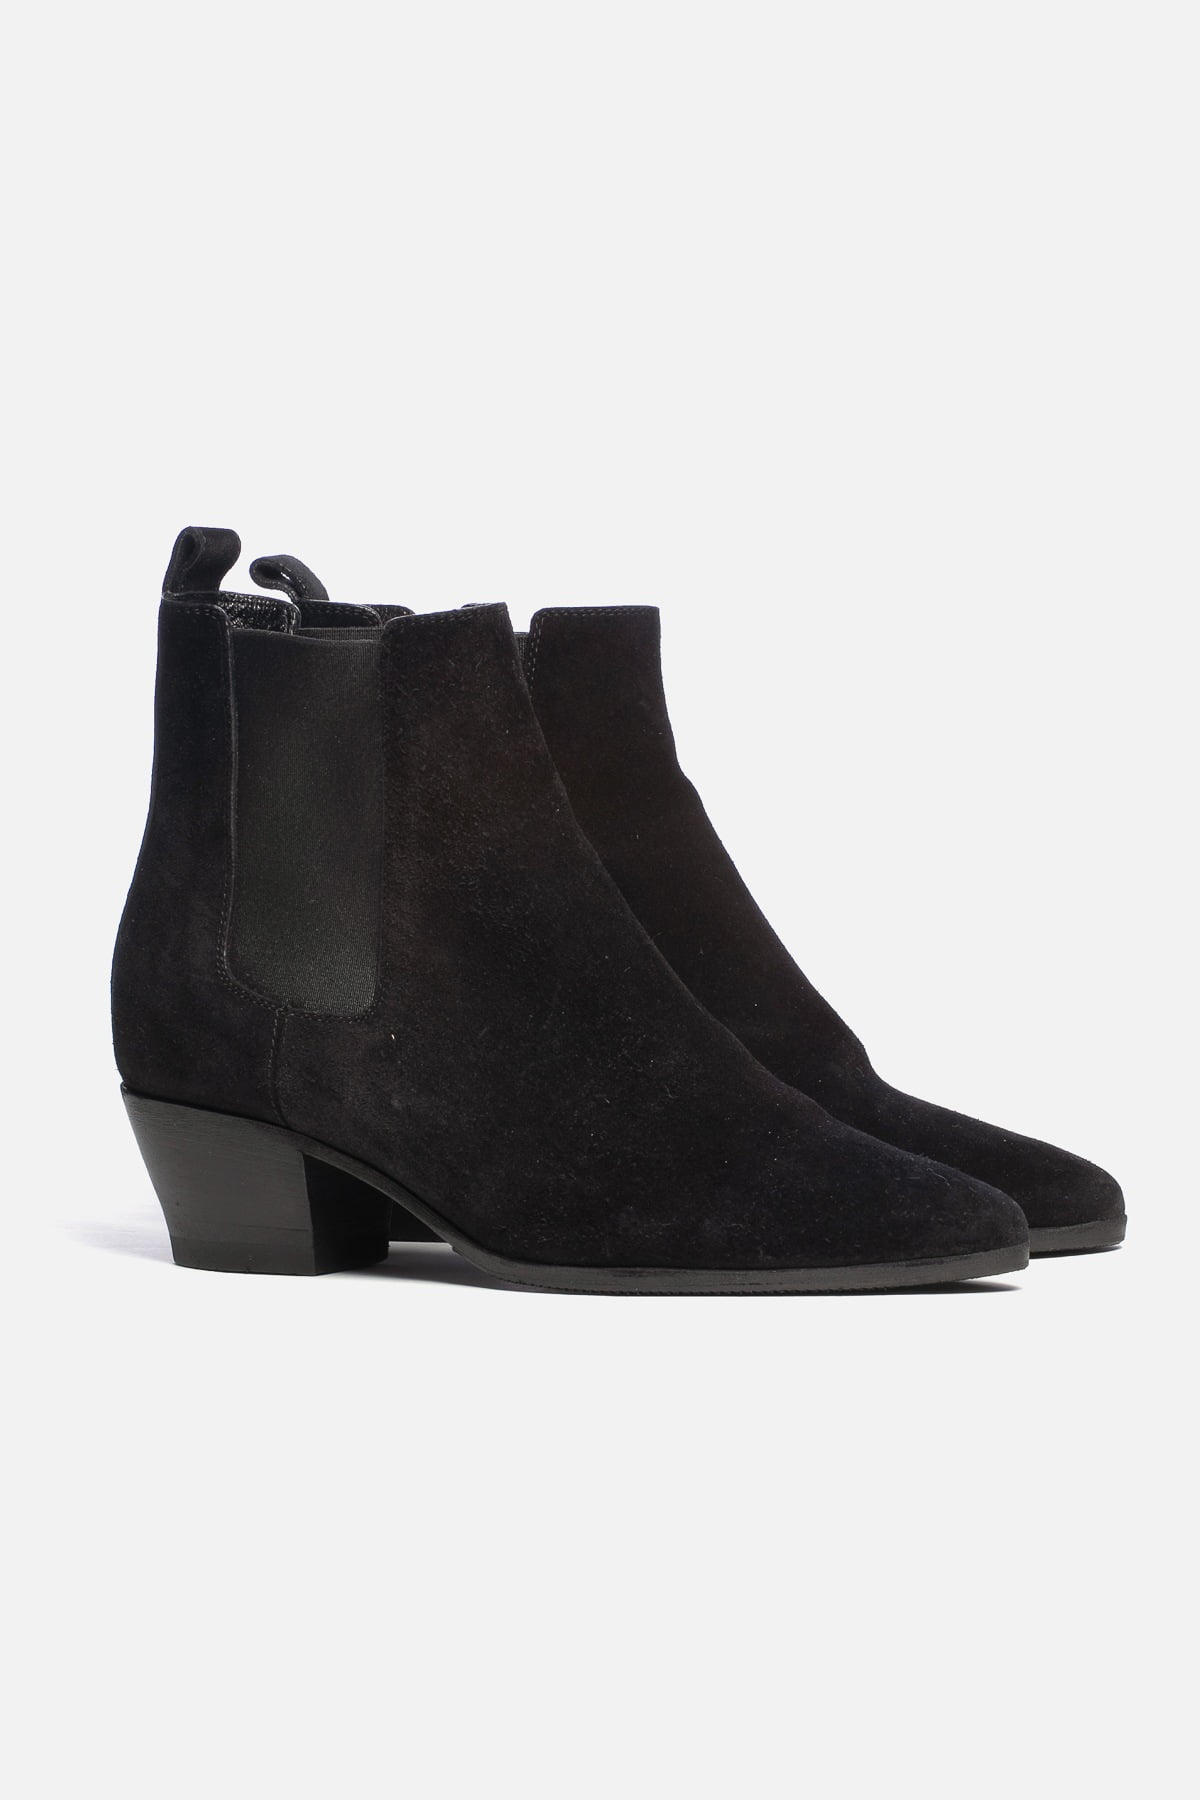 SUEDE POINTED-TOE BOOTIES